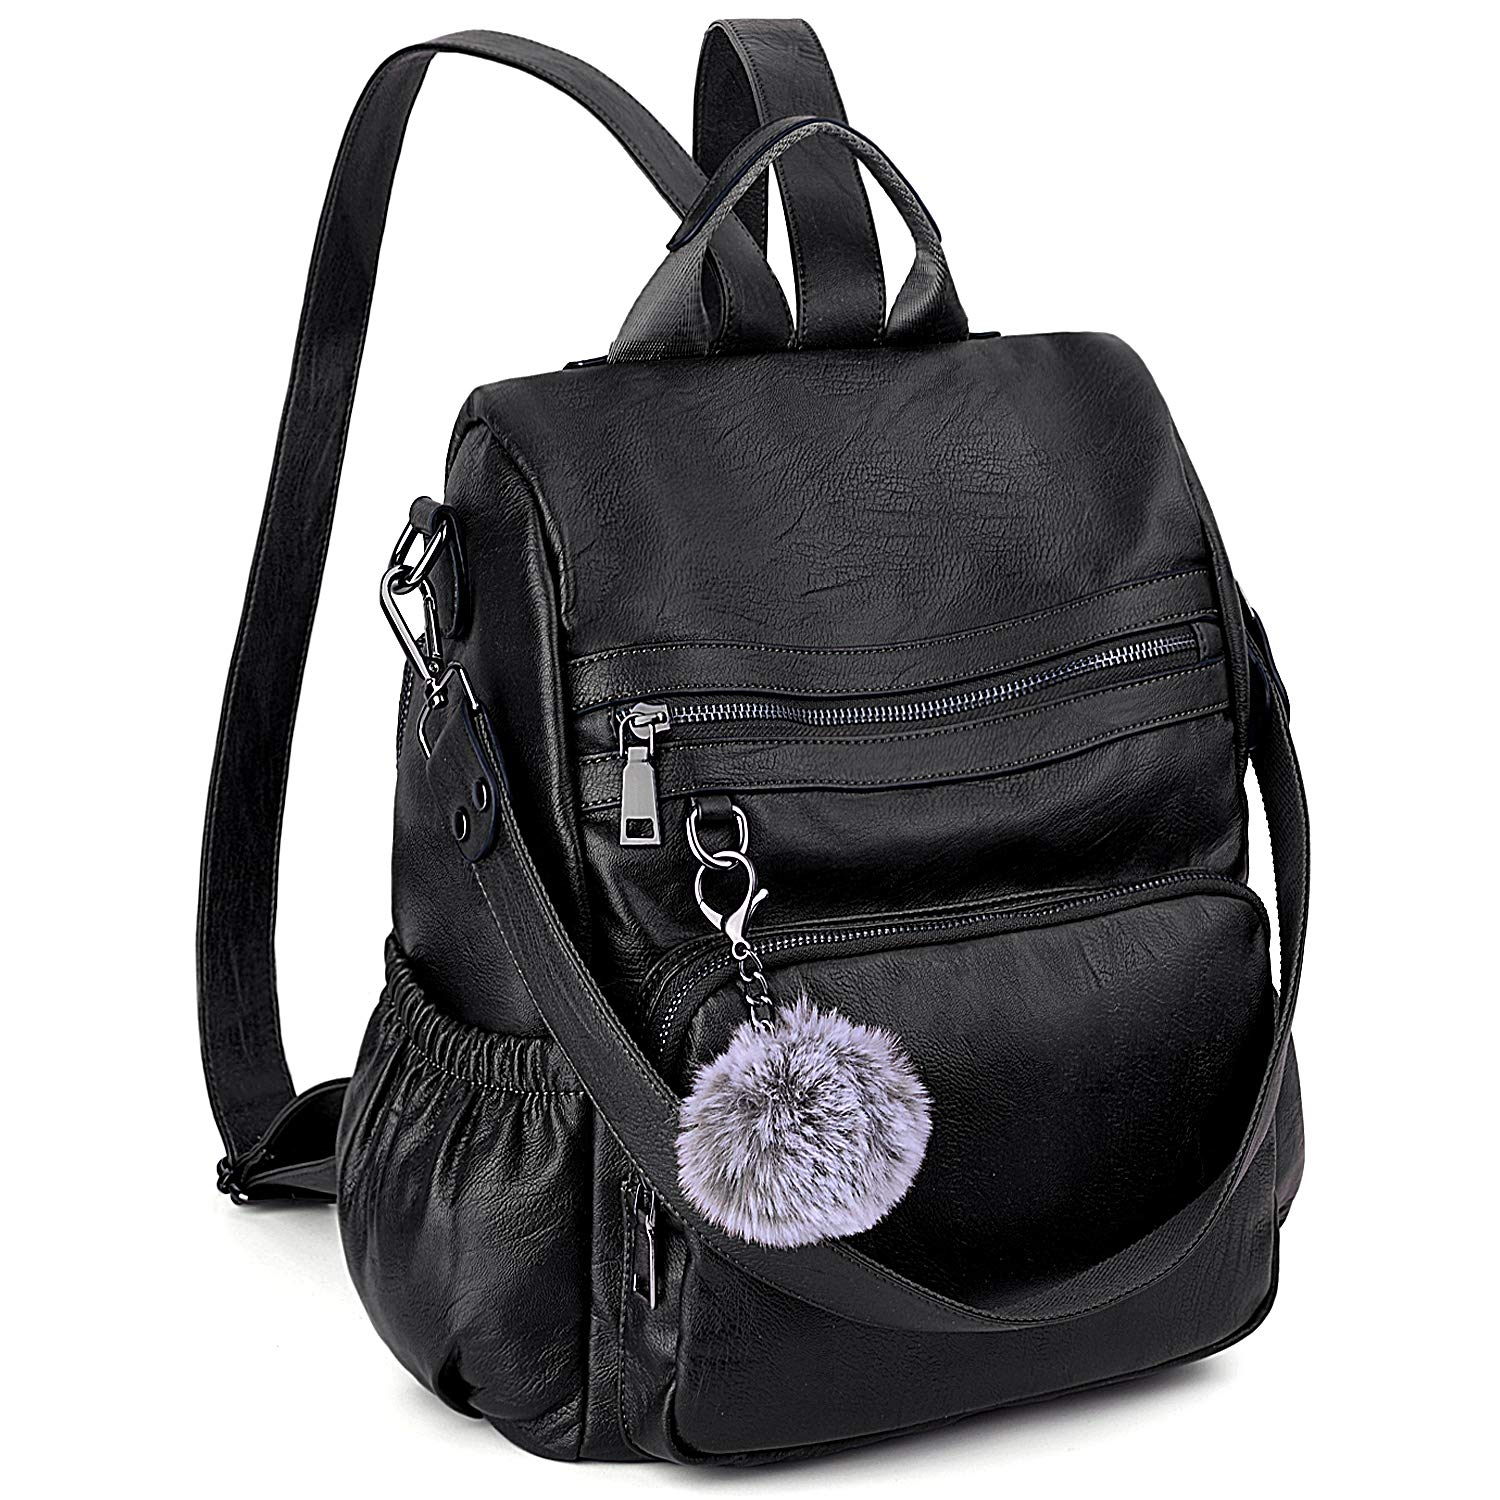 Anti-Theft Convertible Backpack Purse for Women UTO 3 Ways Rucksack PU Leather Shoulder Bag Black